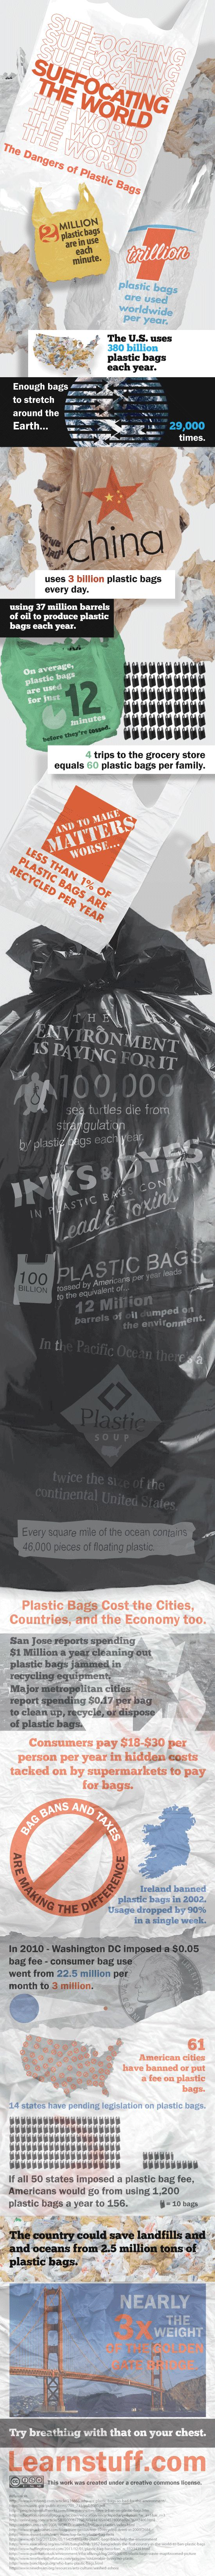 This speaks for itself, but please consider reusable bags when shopping for your loved ones this holiday season! :)